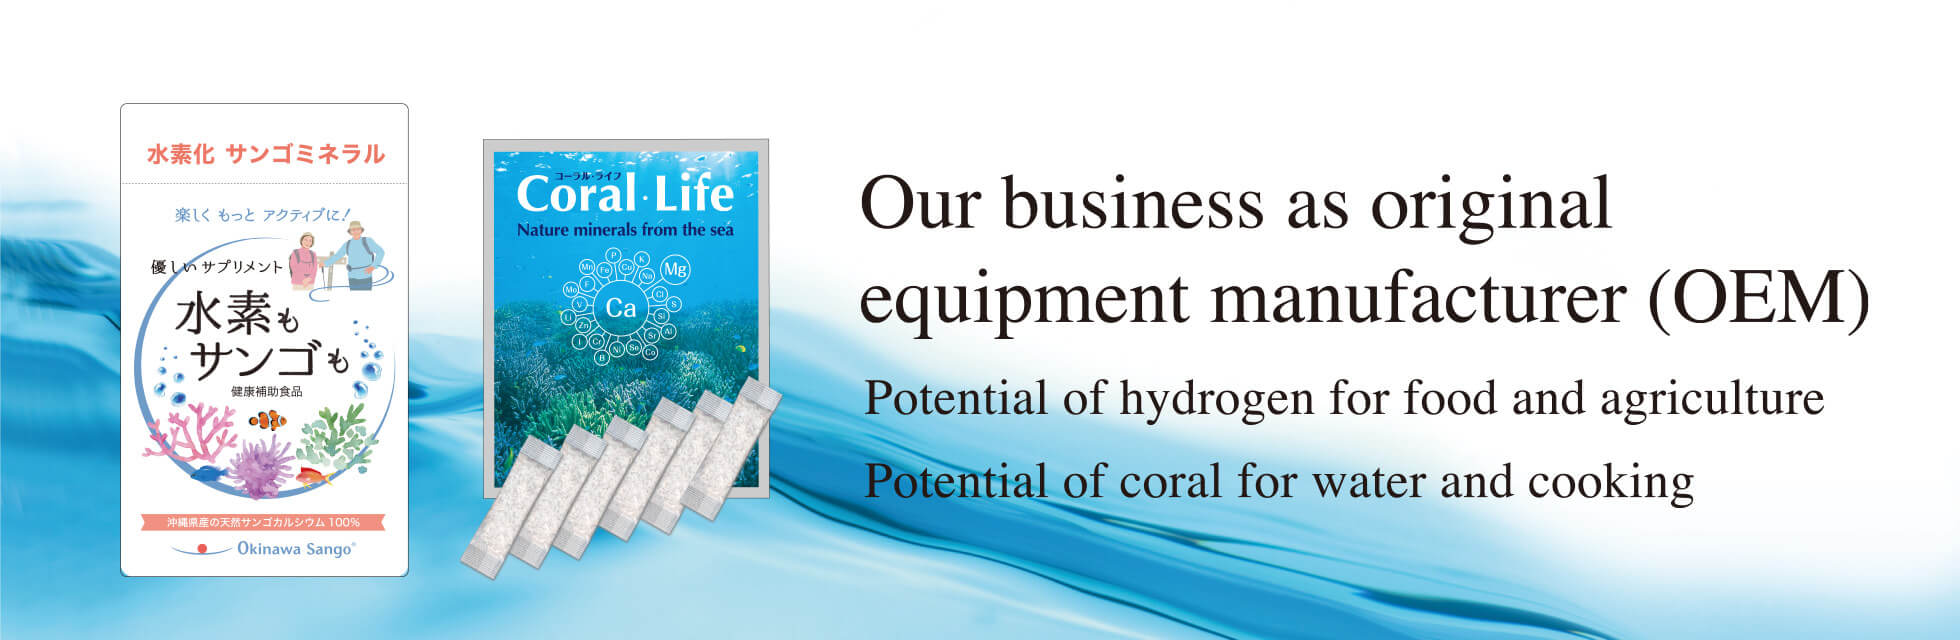 Started production on OEM Potential of hydrogen for Food and Agriculture Potential of Coral for Water and Cooking